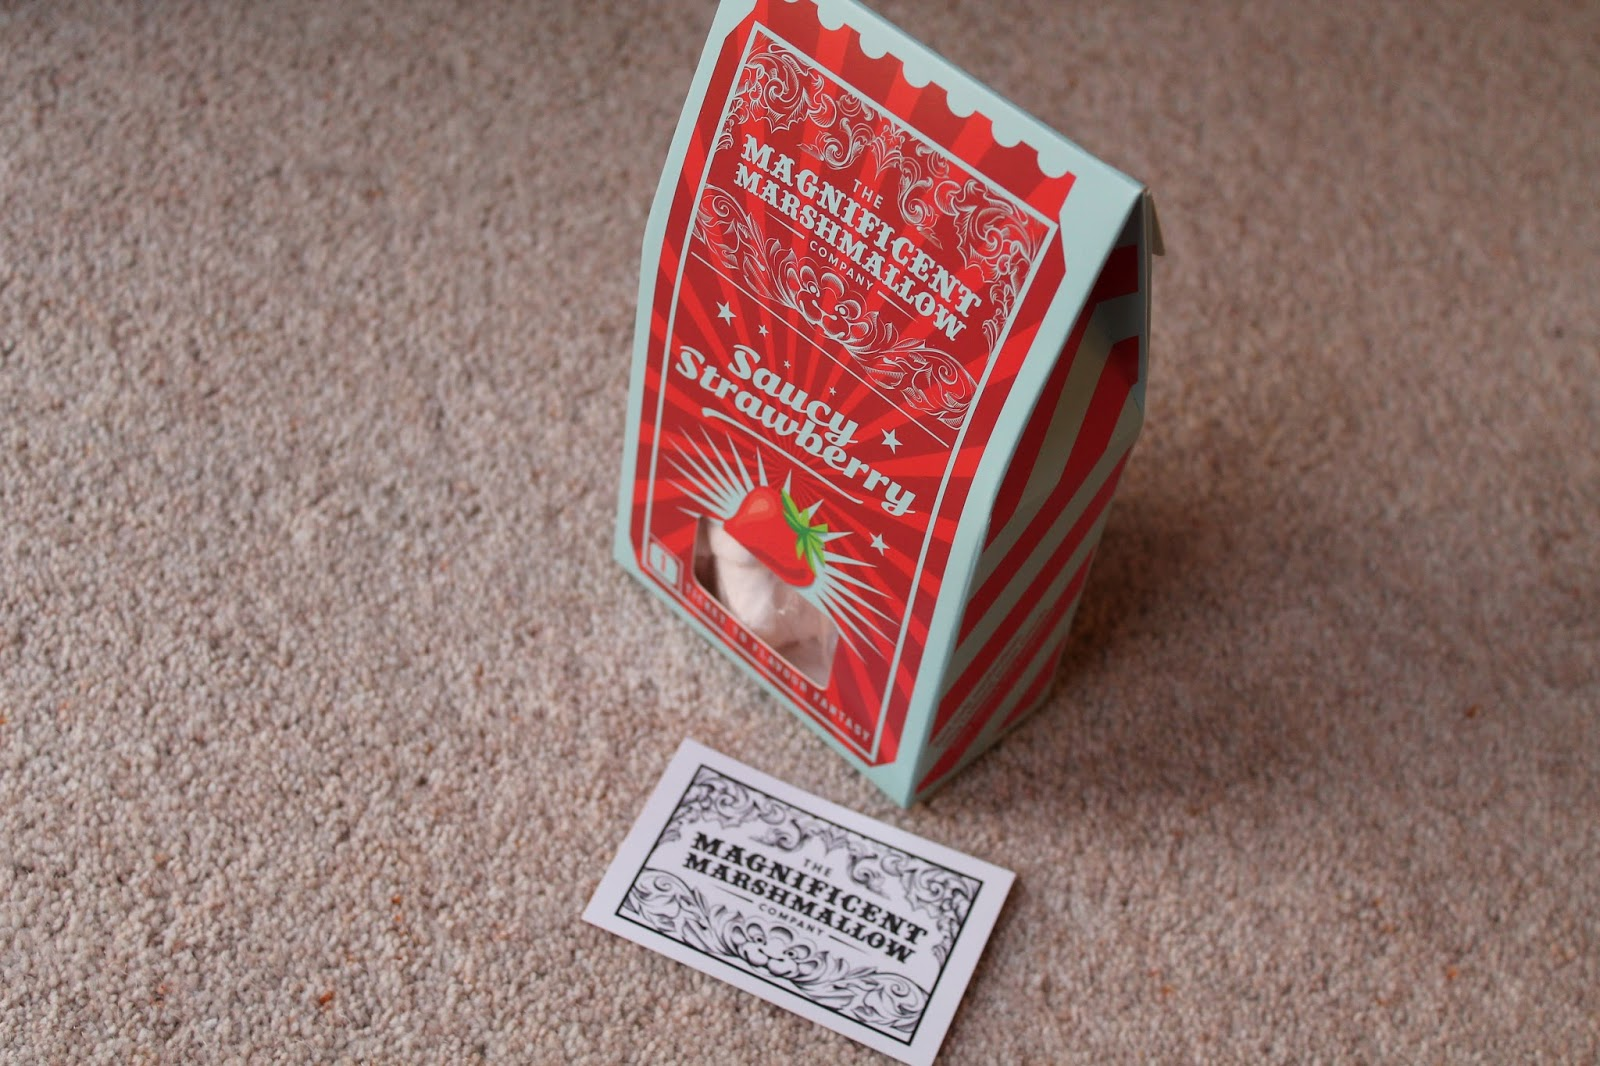 Magnificent Marshmallow Company - Saucy Strawberry